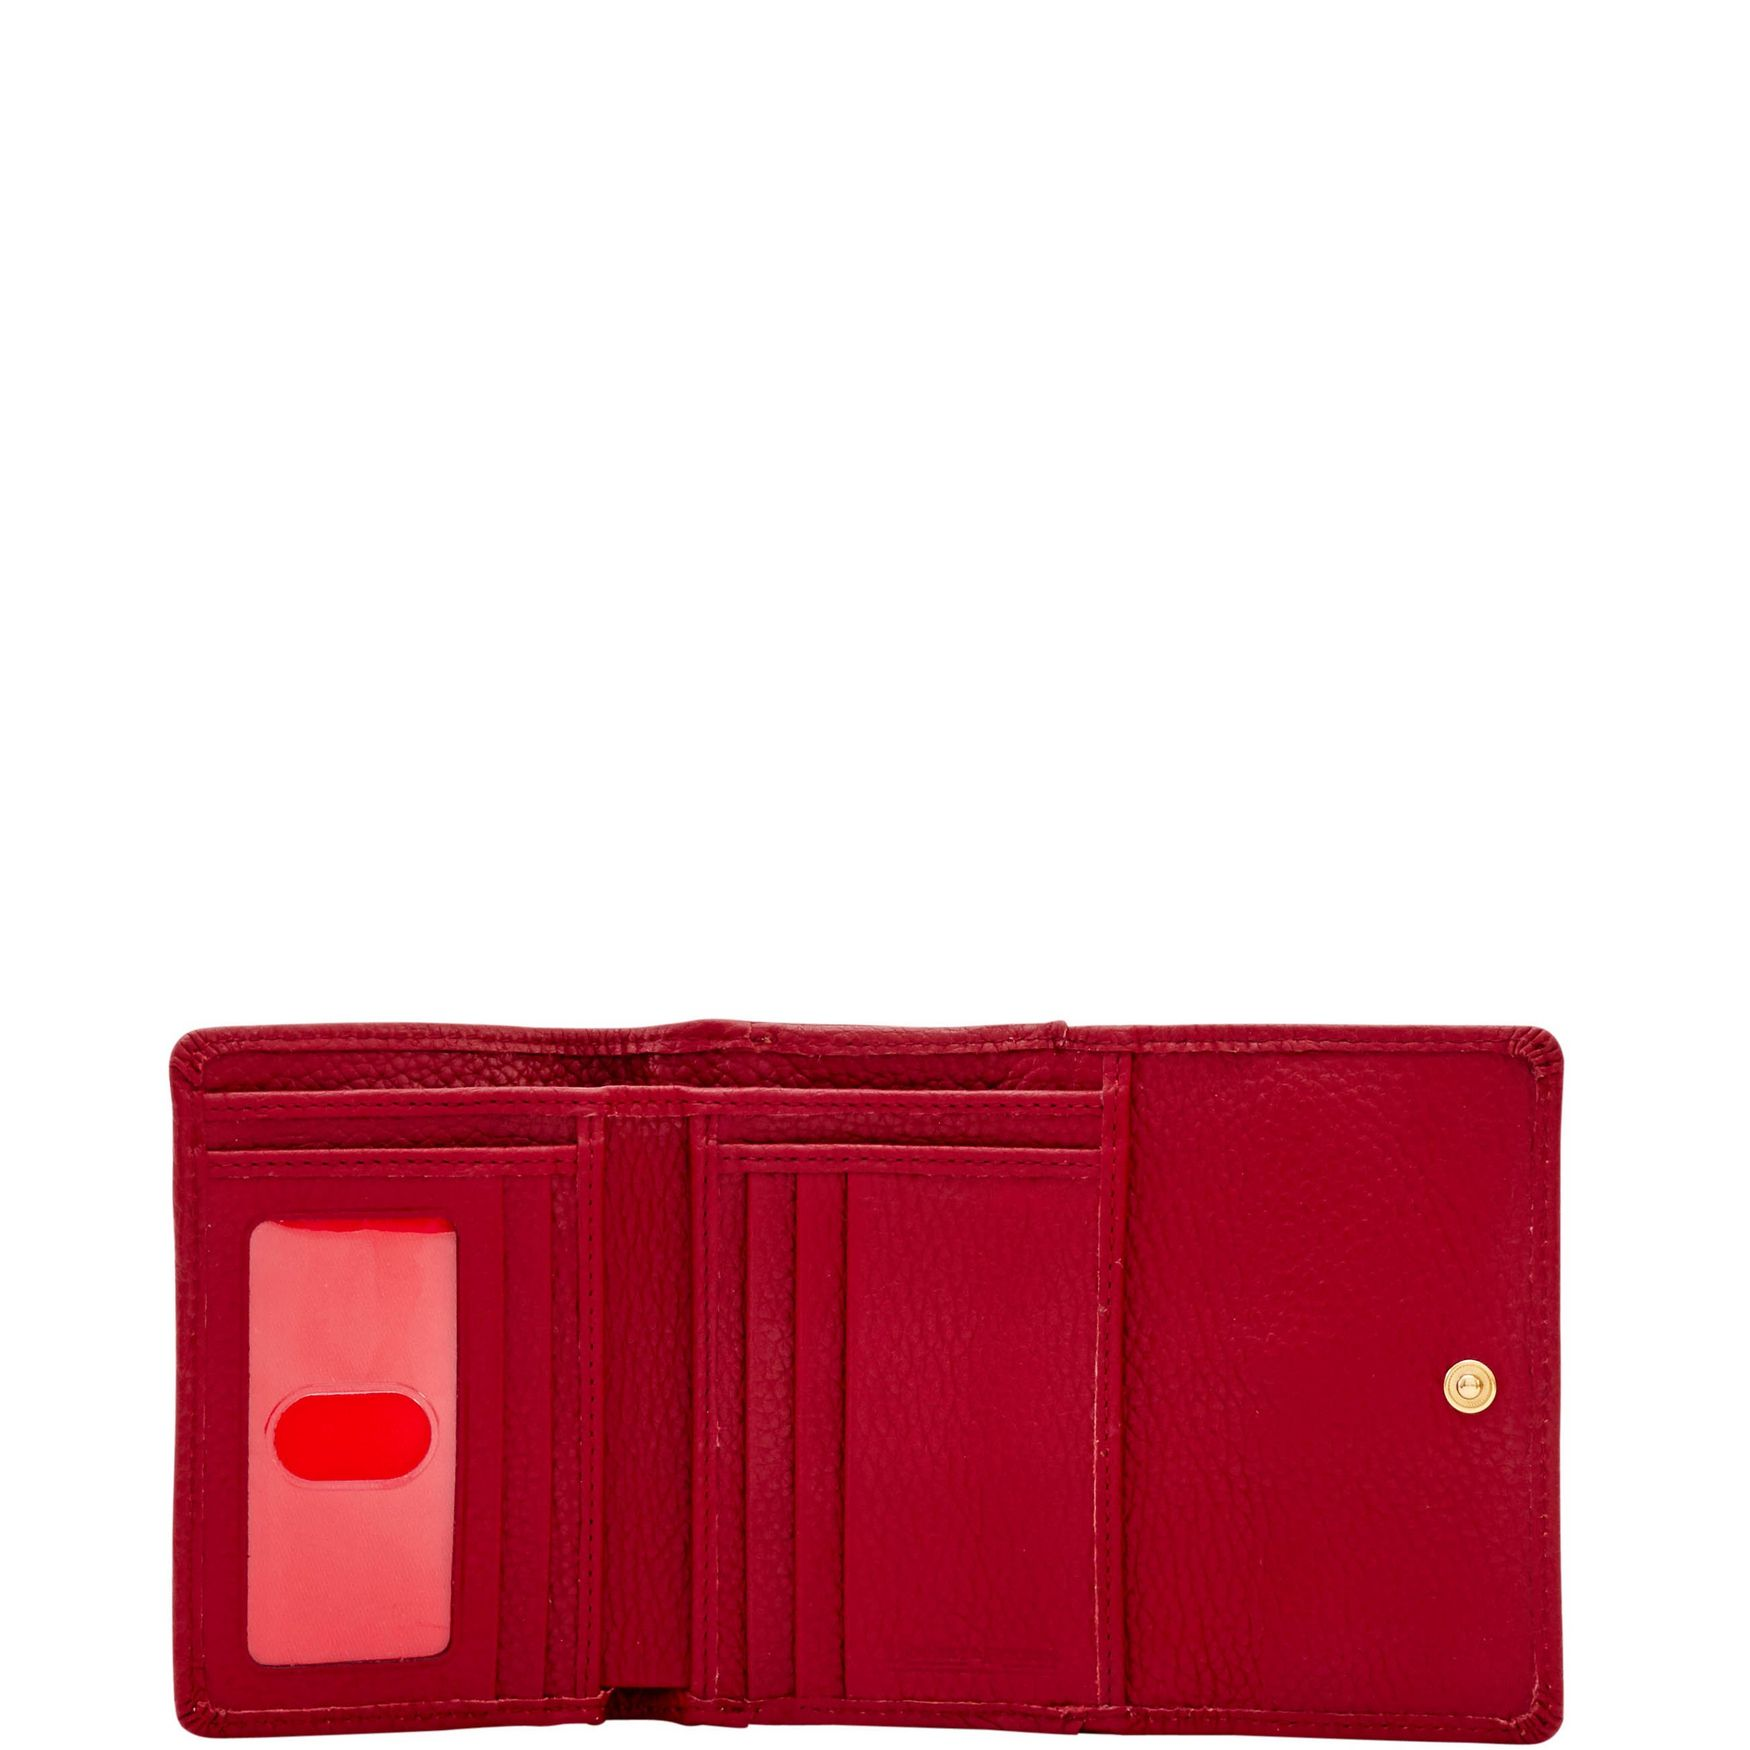 Dooney-amp-Bourke-Pebble-Grain-Framed-Credit-Card-Wallet thumbnail 53